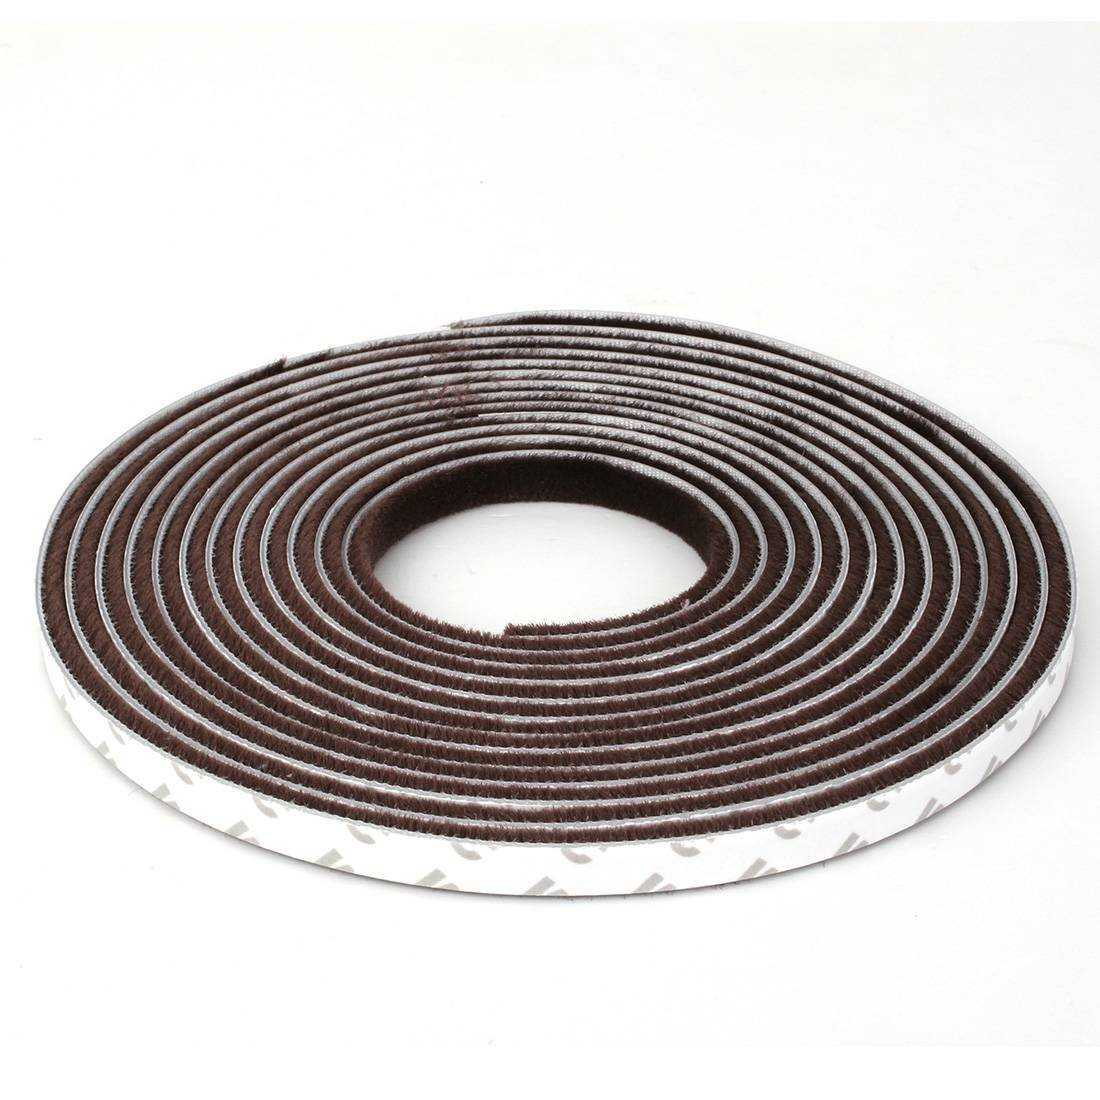 5 Meters Self Adhesive Window Seals Door Sealing Strip Door Gasket Pull Air Stop Seal Brush Brown Seal Brush Window Sealdoor Gasket Aliexpress